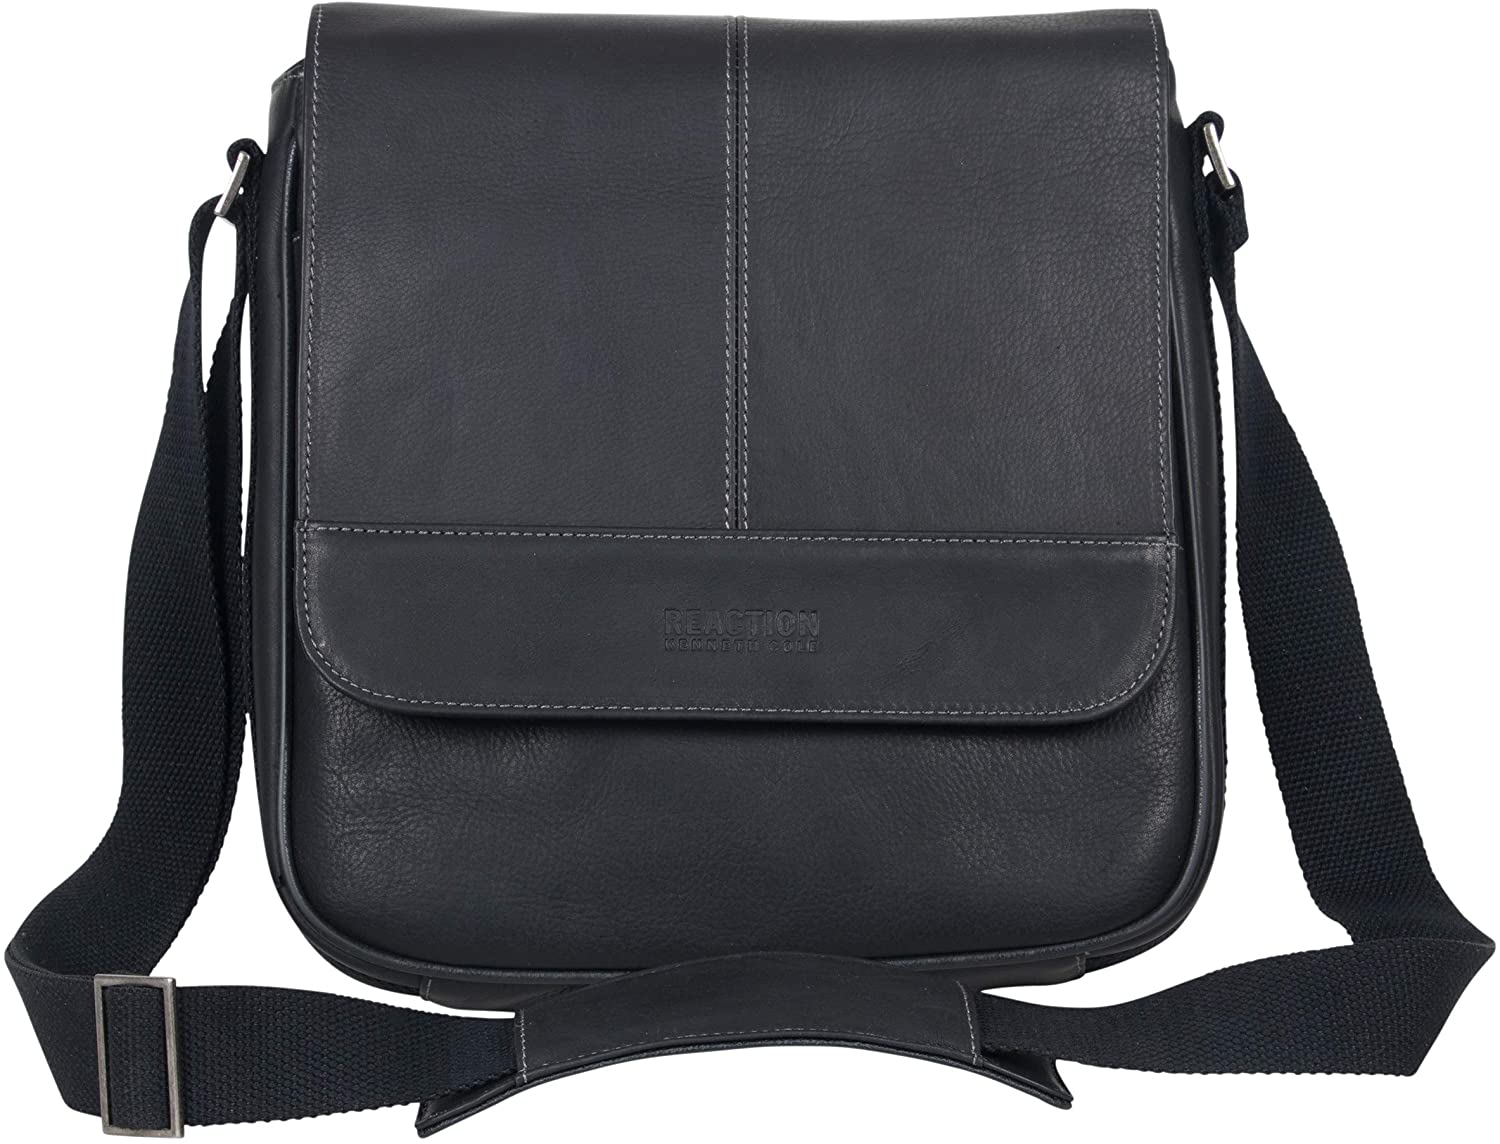 Kenneth Cole Reaction Tablet Day Bag, Black, Tablet Day Bag